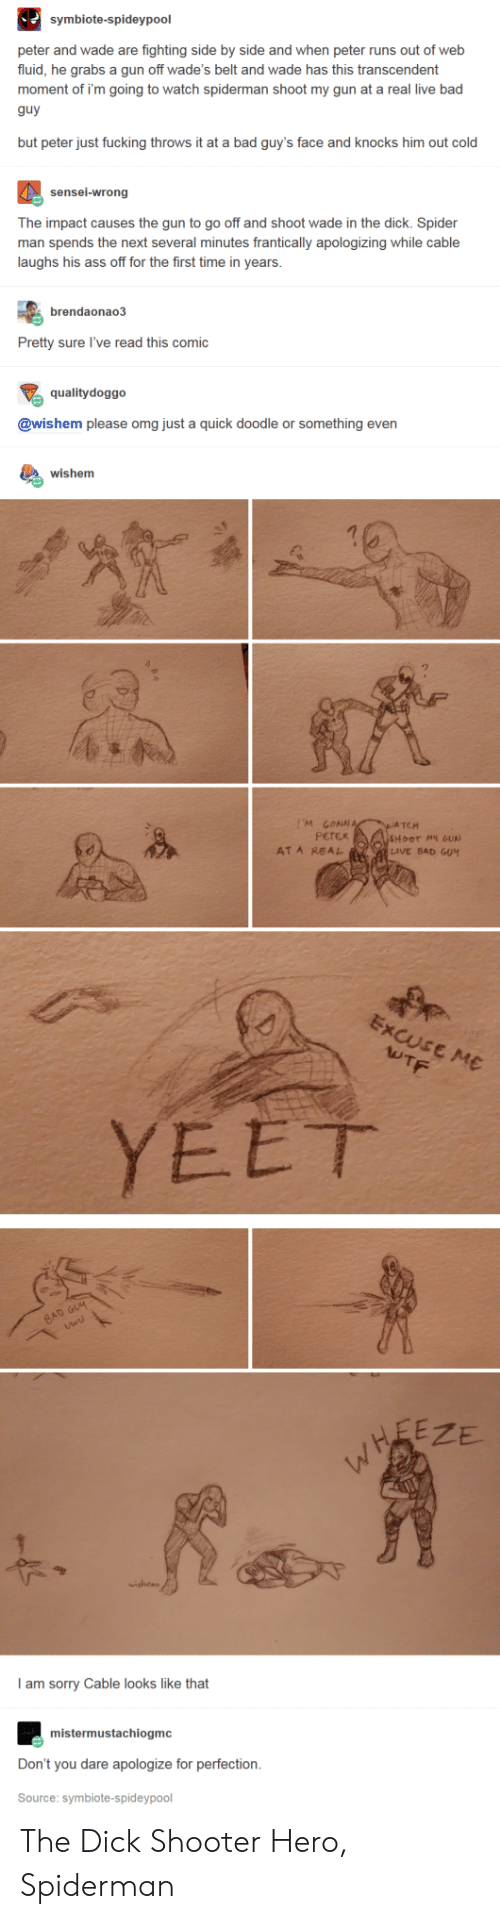 Ass, Bad, and Fucking: symbiote-spideypool  peter and wade are fighting side by side and when peter runs out of web  fluid, he grabs a gun off wade's belt and wade has this transcendent  moment of i'm going to watch spiderman shoot my gun at a real live bad  guy  but peter just fucking throws it at a bad guy's face and knocks him out cold  sensei-wrong  The impact causes the gun to go off and shoot wade in the dick. Spider  man spends the next several minutes frantically apologizing while cable  laughs his ass off for the first time in years  apologizing  laughs his ass of fo the frst  brendaonao3  Pretty sure l've read this comic  qualitydoggo  @wishem please omg just a quick doodle or something even  wishem  'M LON  TCH  PETER  AT A REAL  LIVE BAD GU4  YEET  ZE  y  !  I am sorry Cable looks like that  mistermustachiogmc  Don't you dare apologize for perfection.  Source: symbiote-spideypool The Dick Shooter Hero, Spiderman